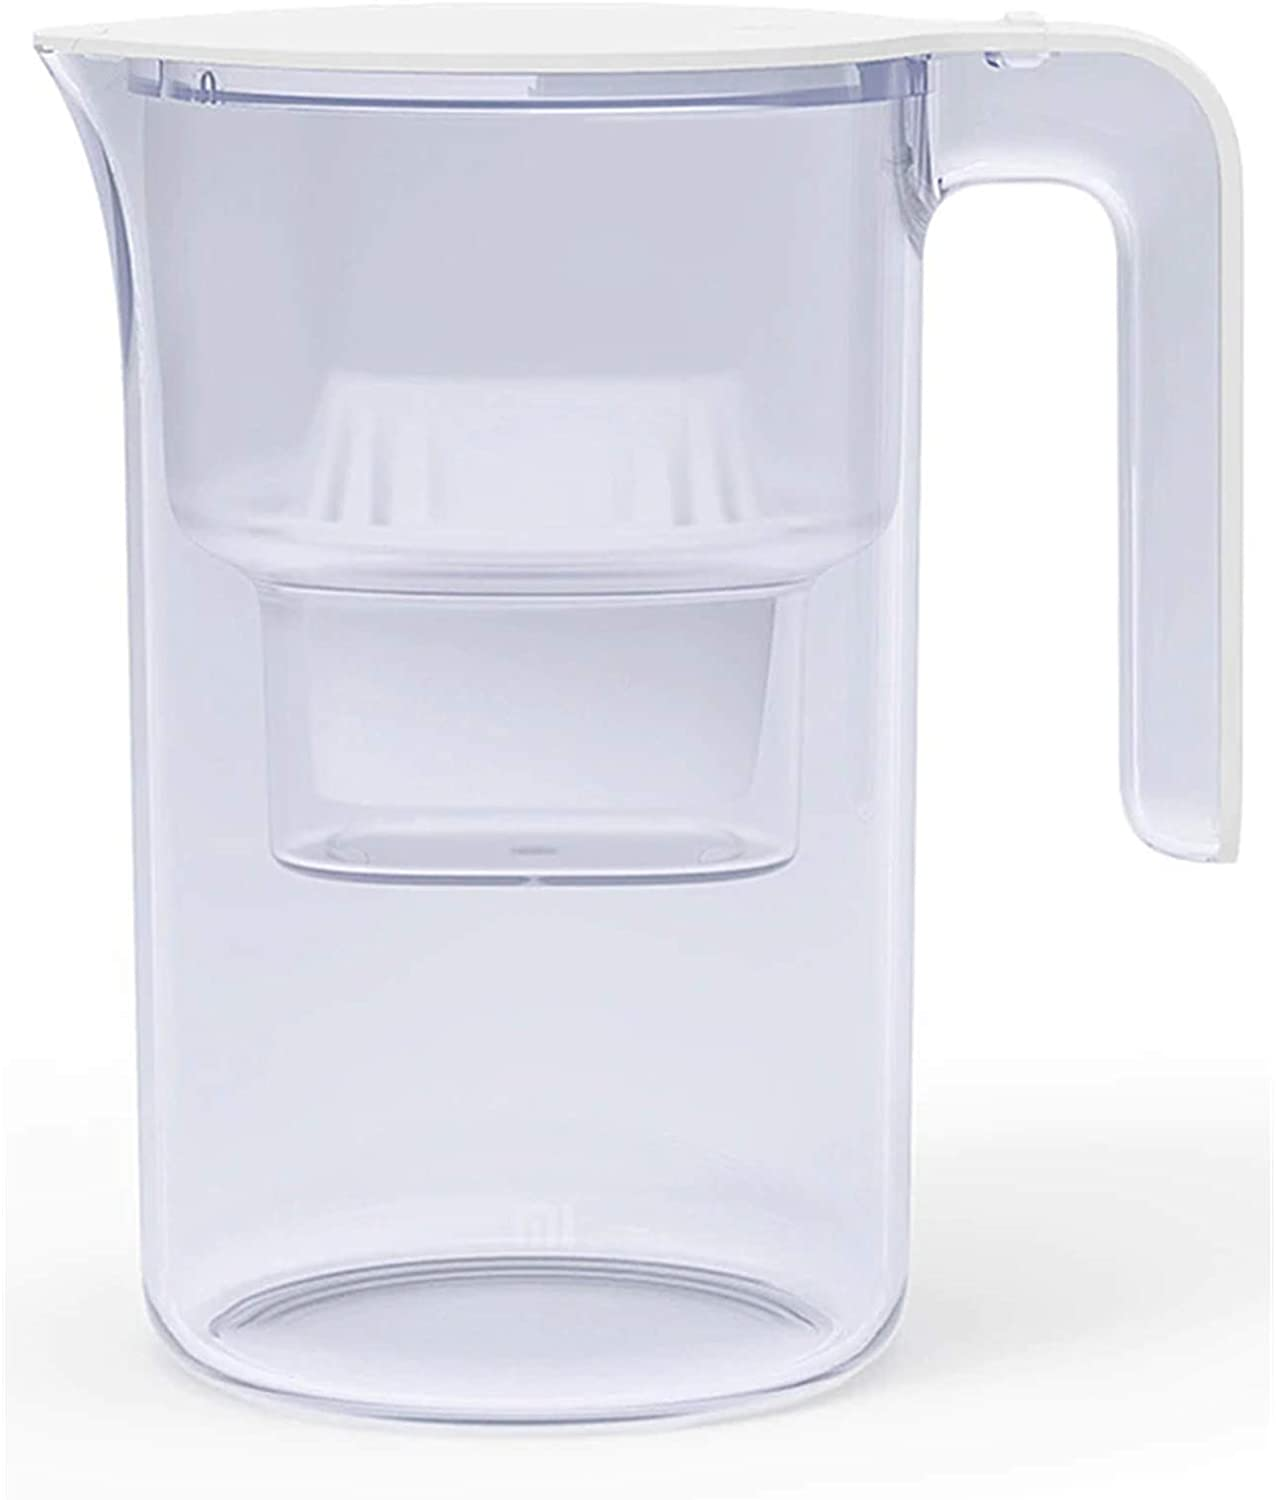 Xiaomi MI Water Filter Pitcher Water Filter Pitcher: Xiaomi ...